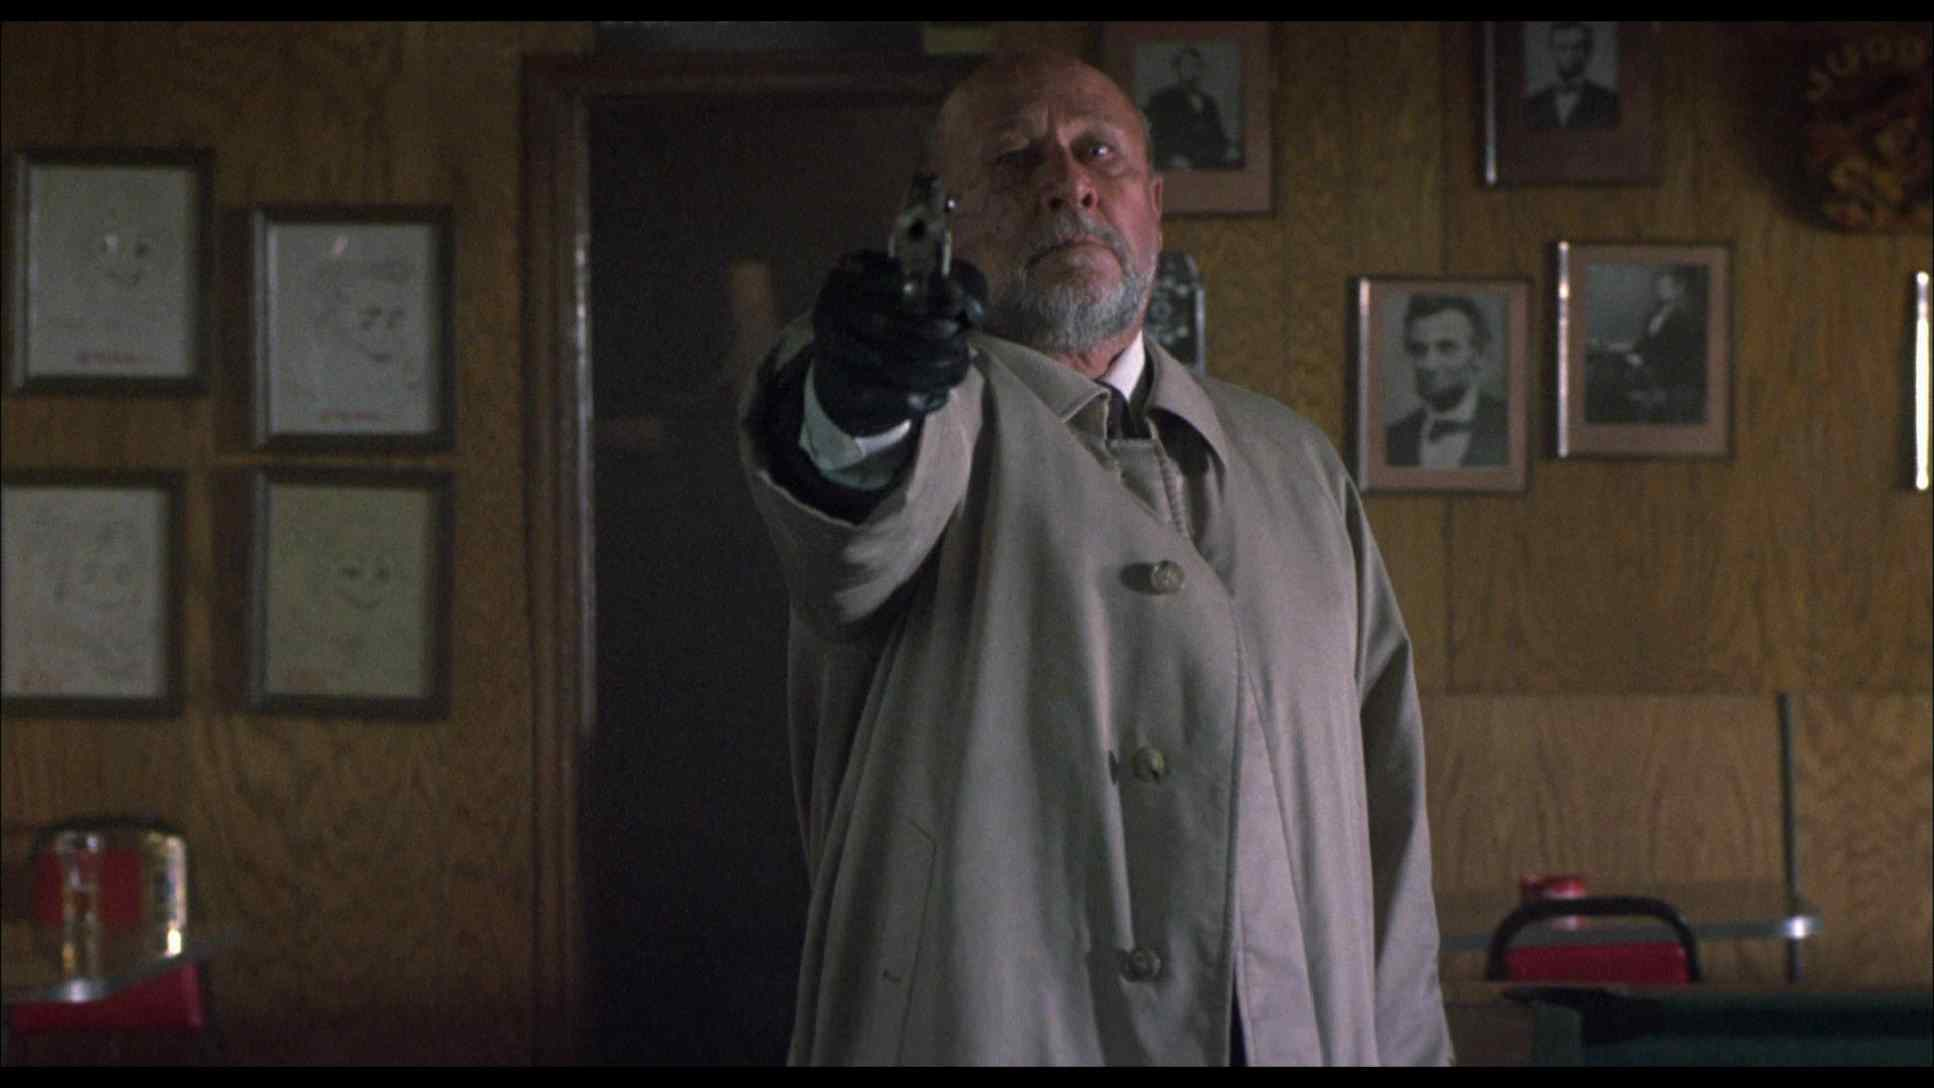 Donald Pleasance as Dr. Loomis in The Halloween franchise